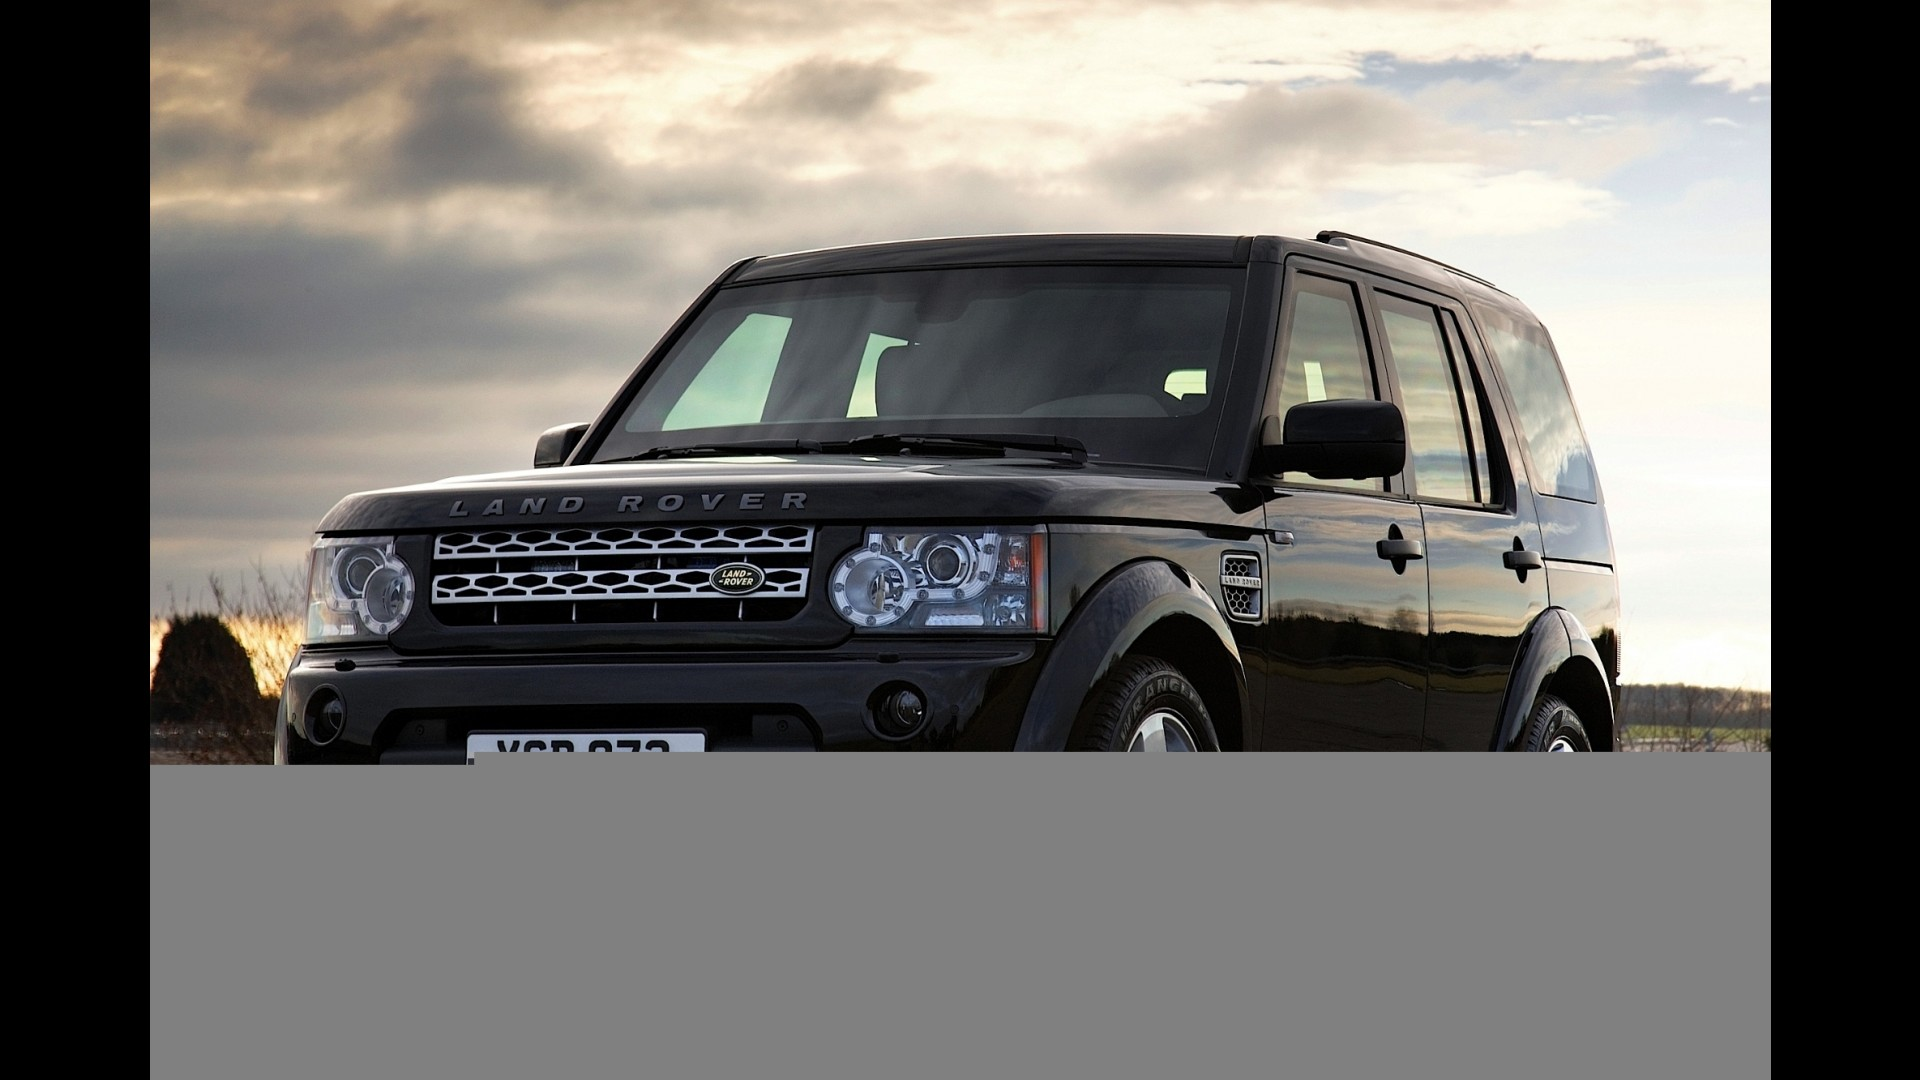 https://icdn-4.motor1.com/images/mgl/8W8y3/s1/land-rover-lr4-armored.jpg